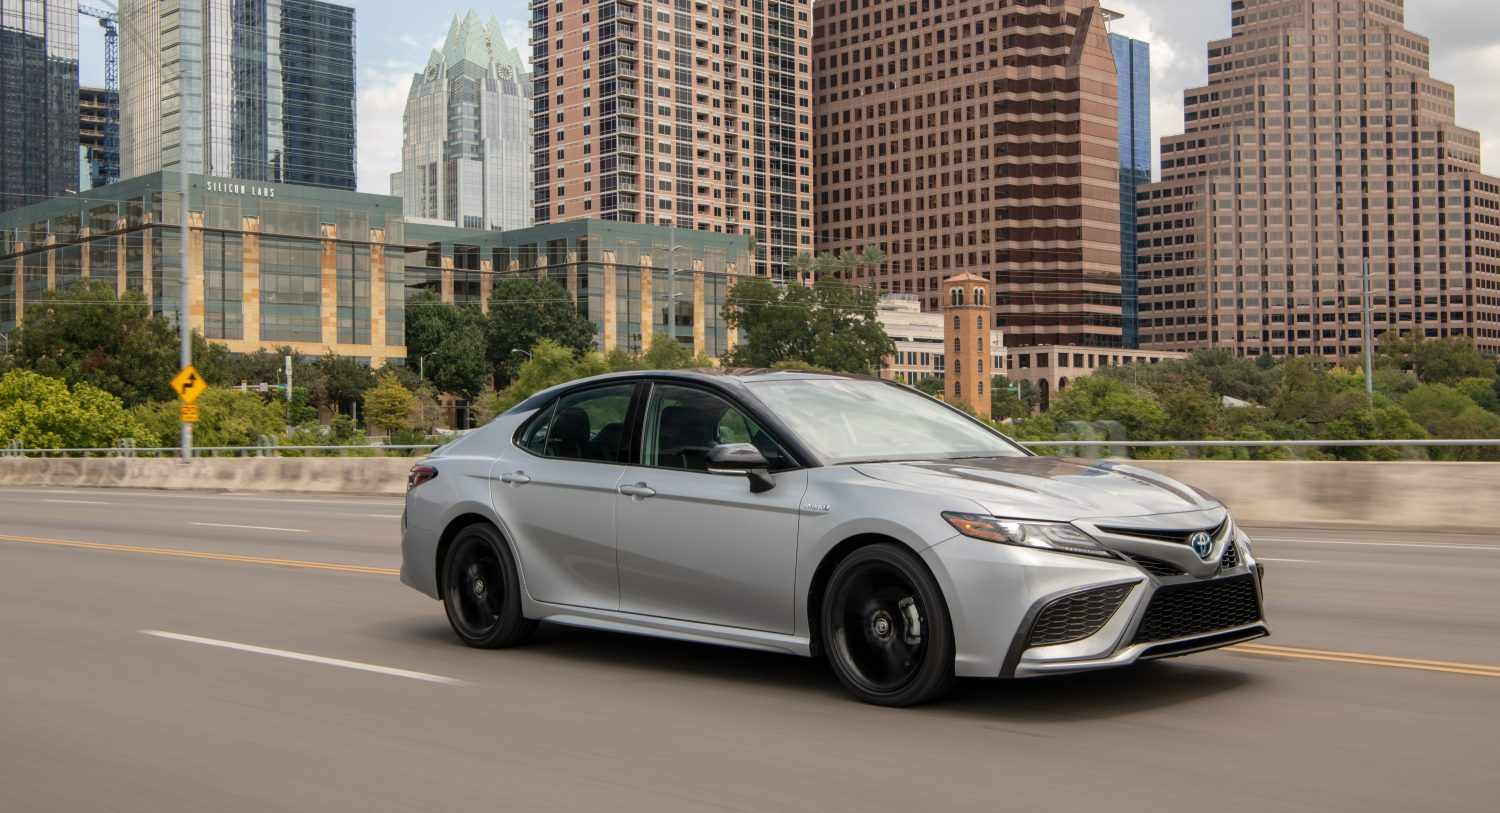 Clear-Cut Leader: The 3 Toyota Camry Adds More Variants While